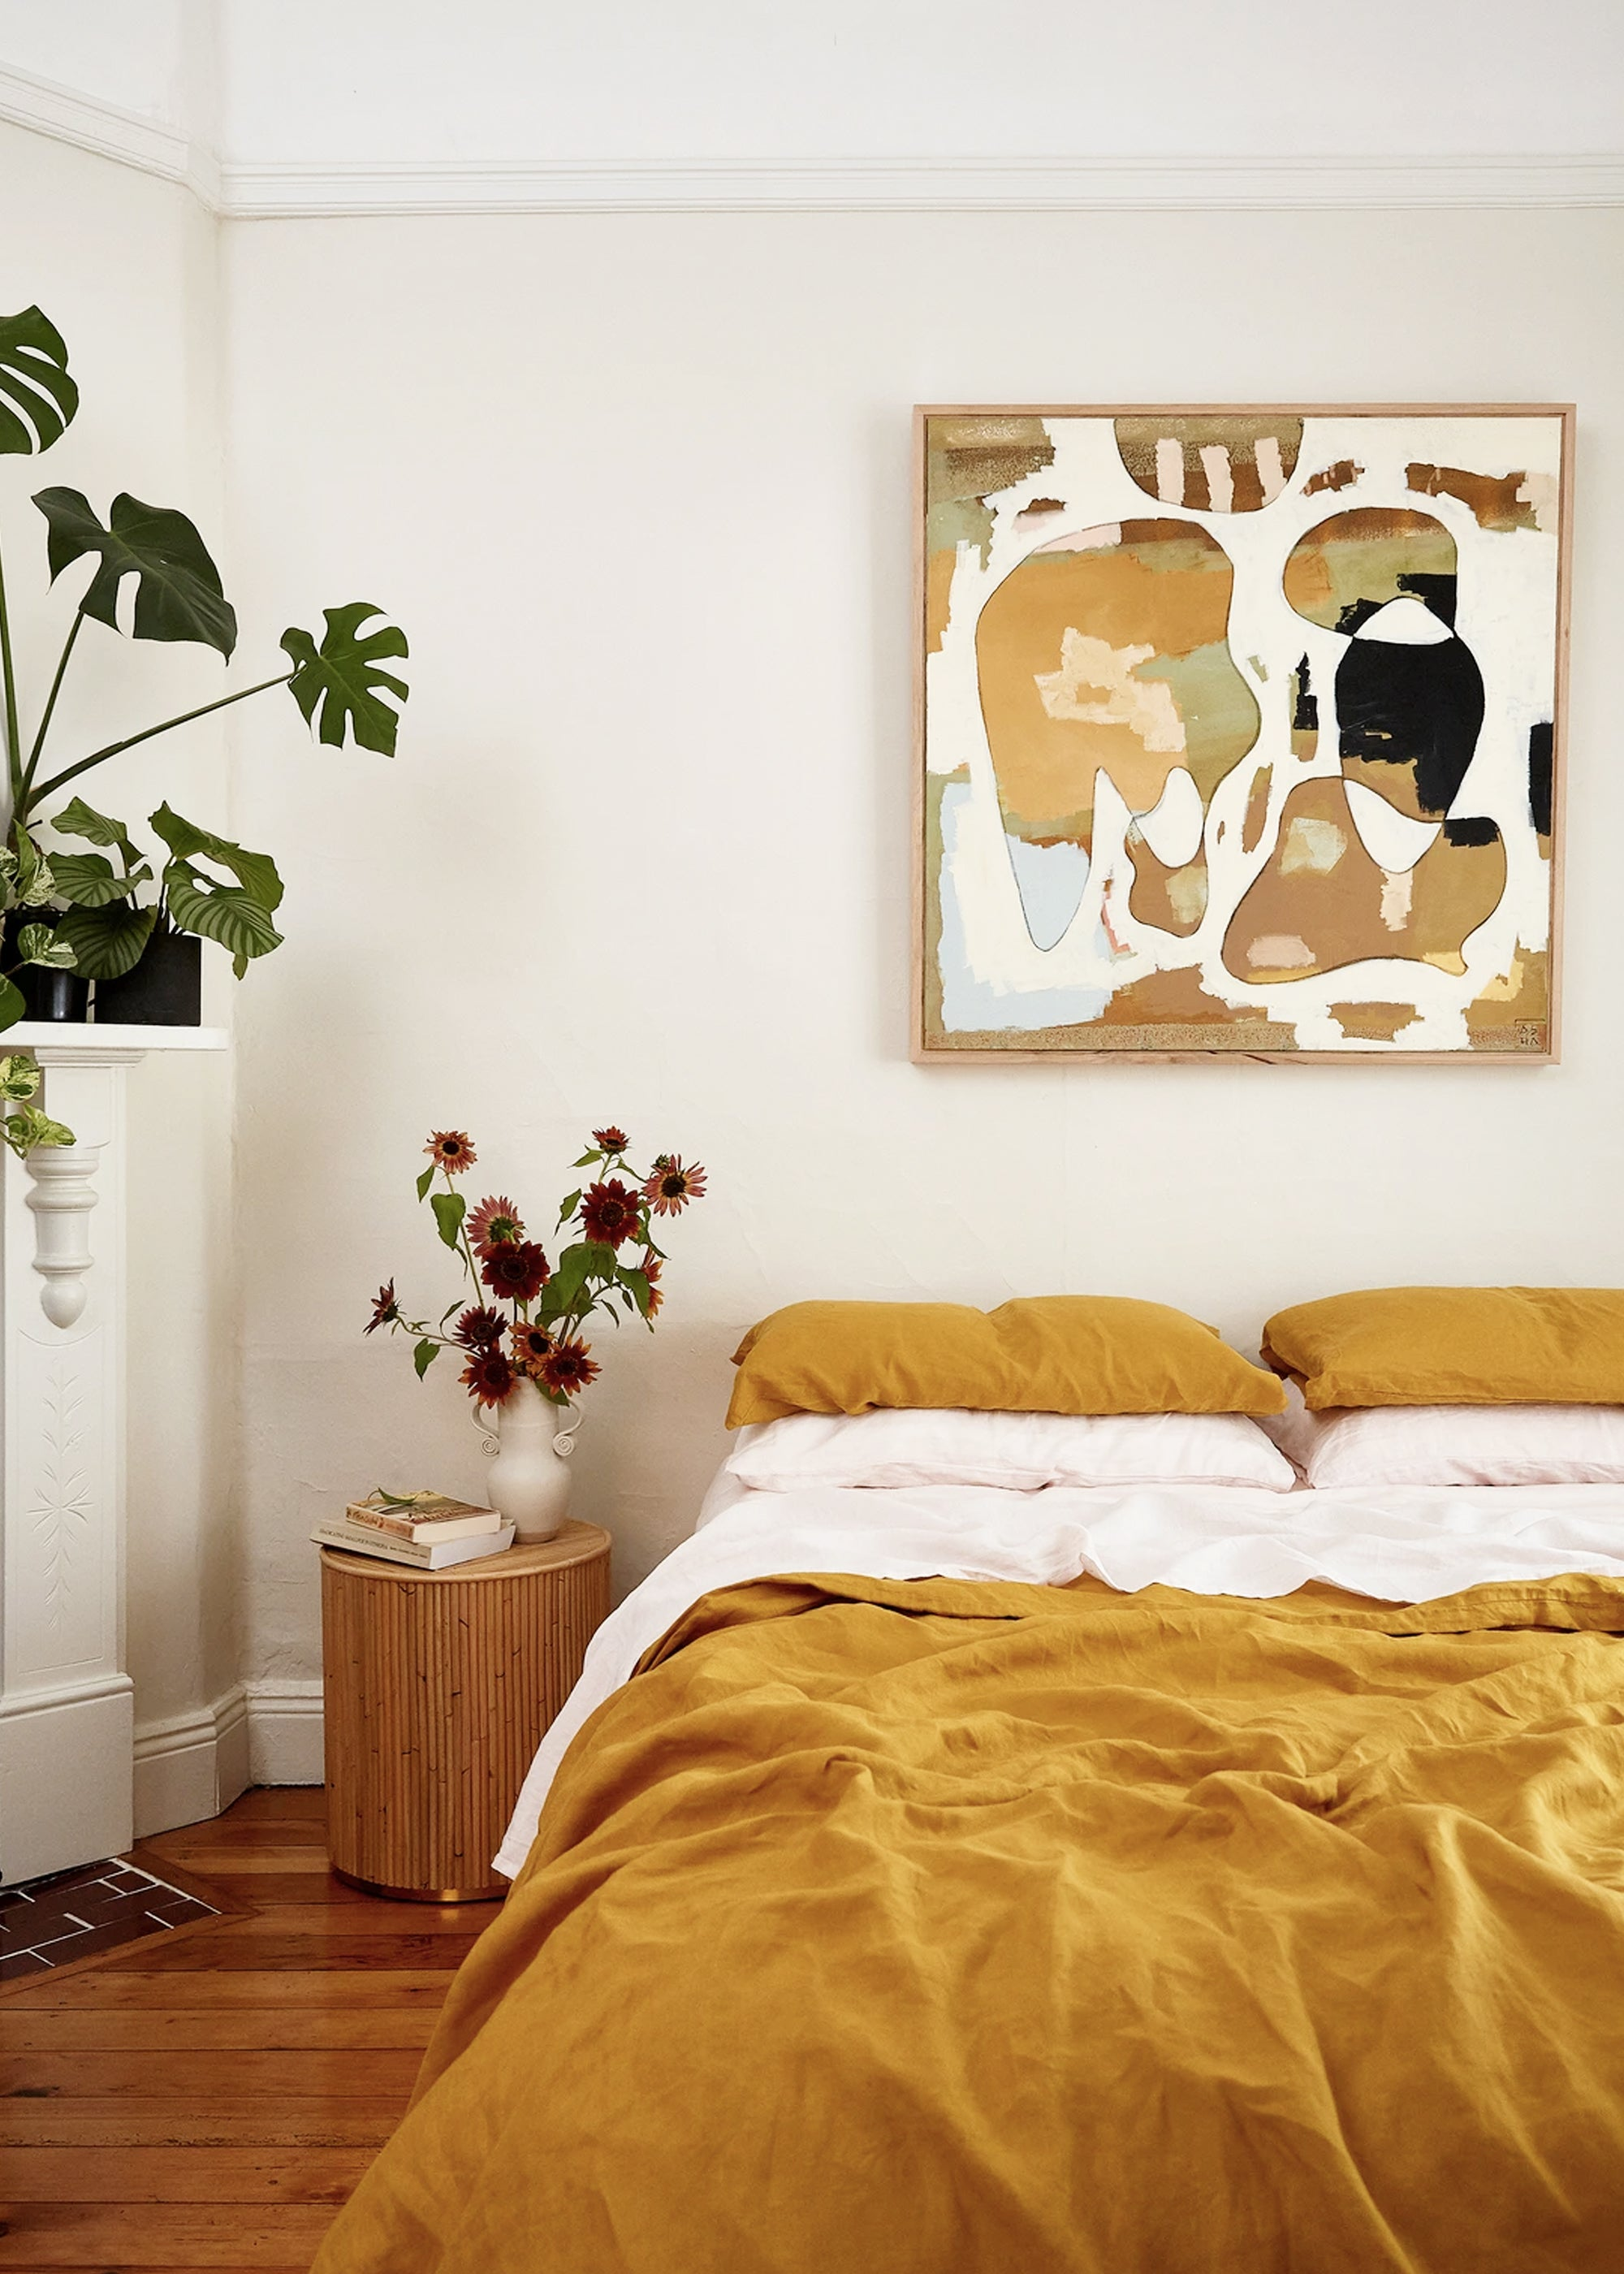 Every Interior Designer Knows These Simple Bedroom Decor Hacks Bed Threads